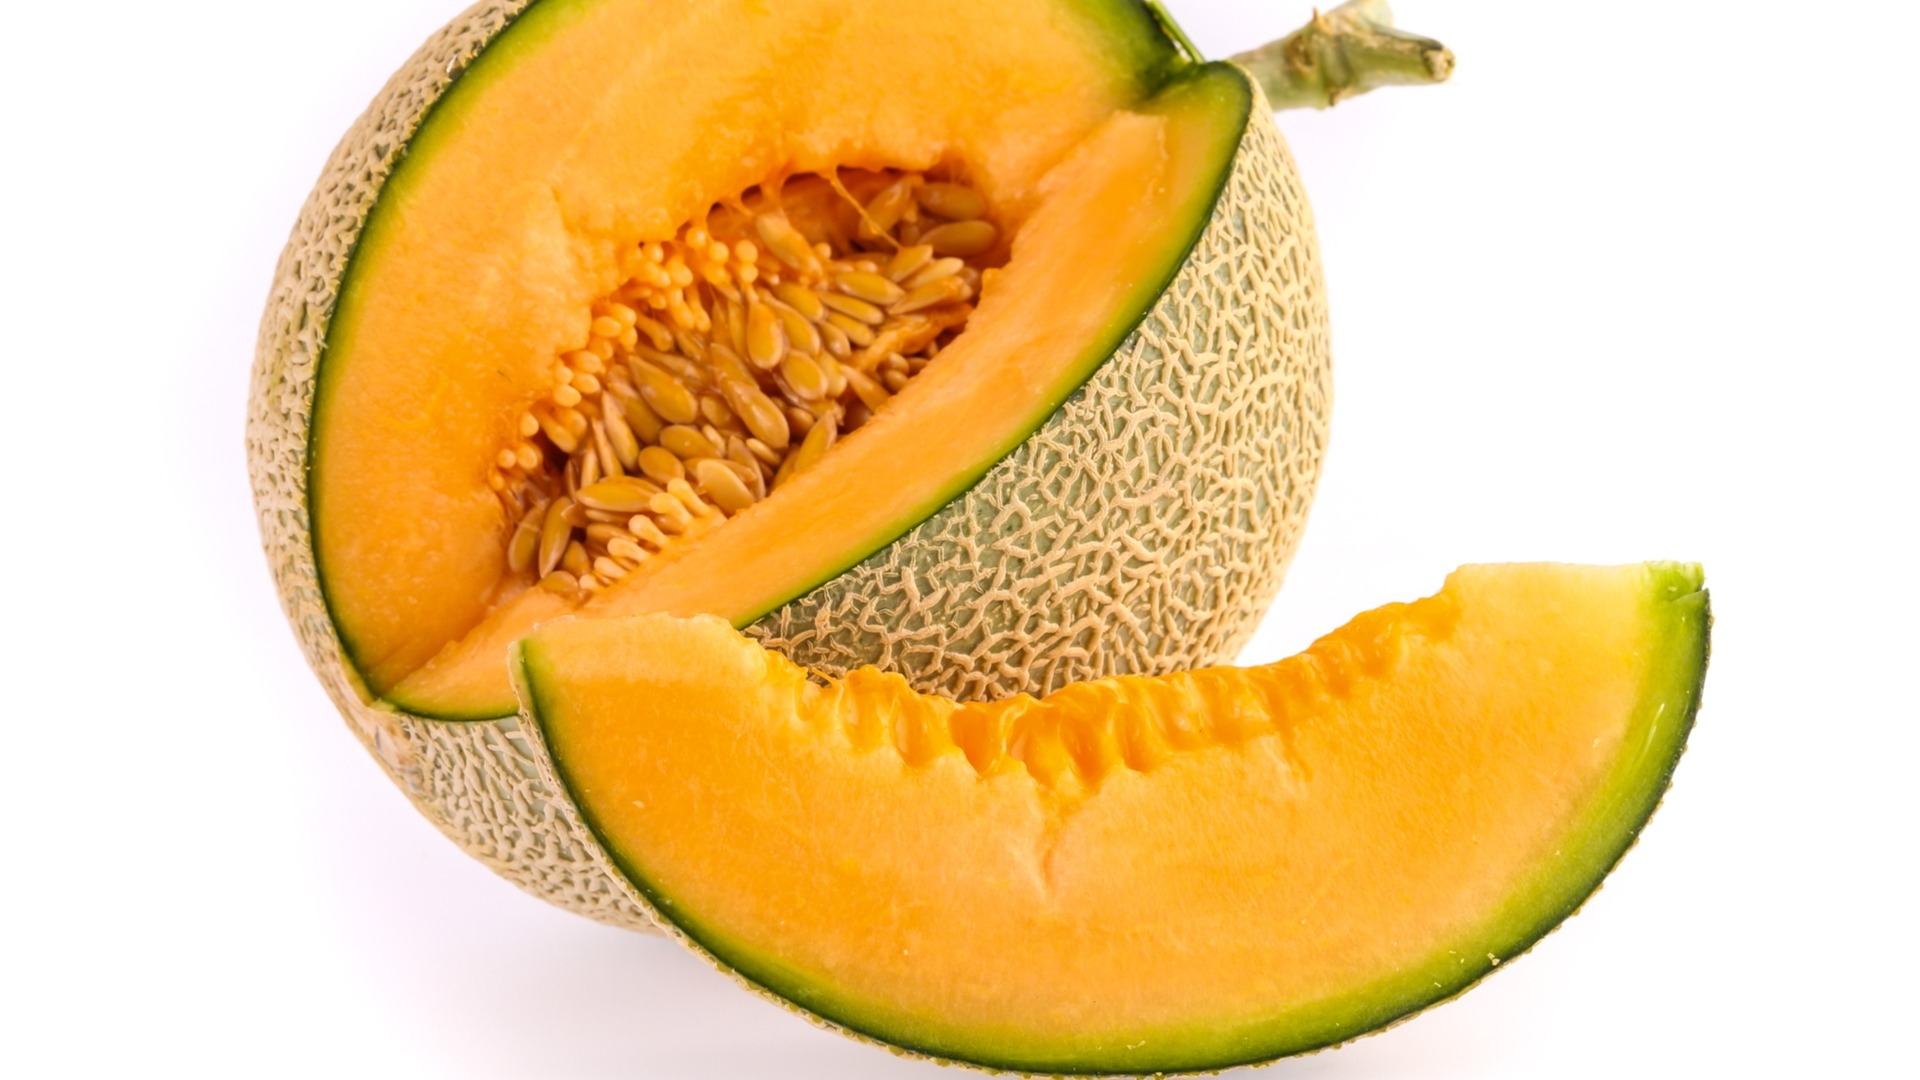 Archaeology Of Fruits Vegetables Cantaloupe Chef S Mandala The cantaloupe is a juicy, orange summer fruit that's related to the watermelon and honeydew melon. archaeology of fruits vegetables cantaloupe